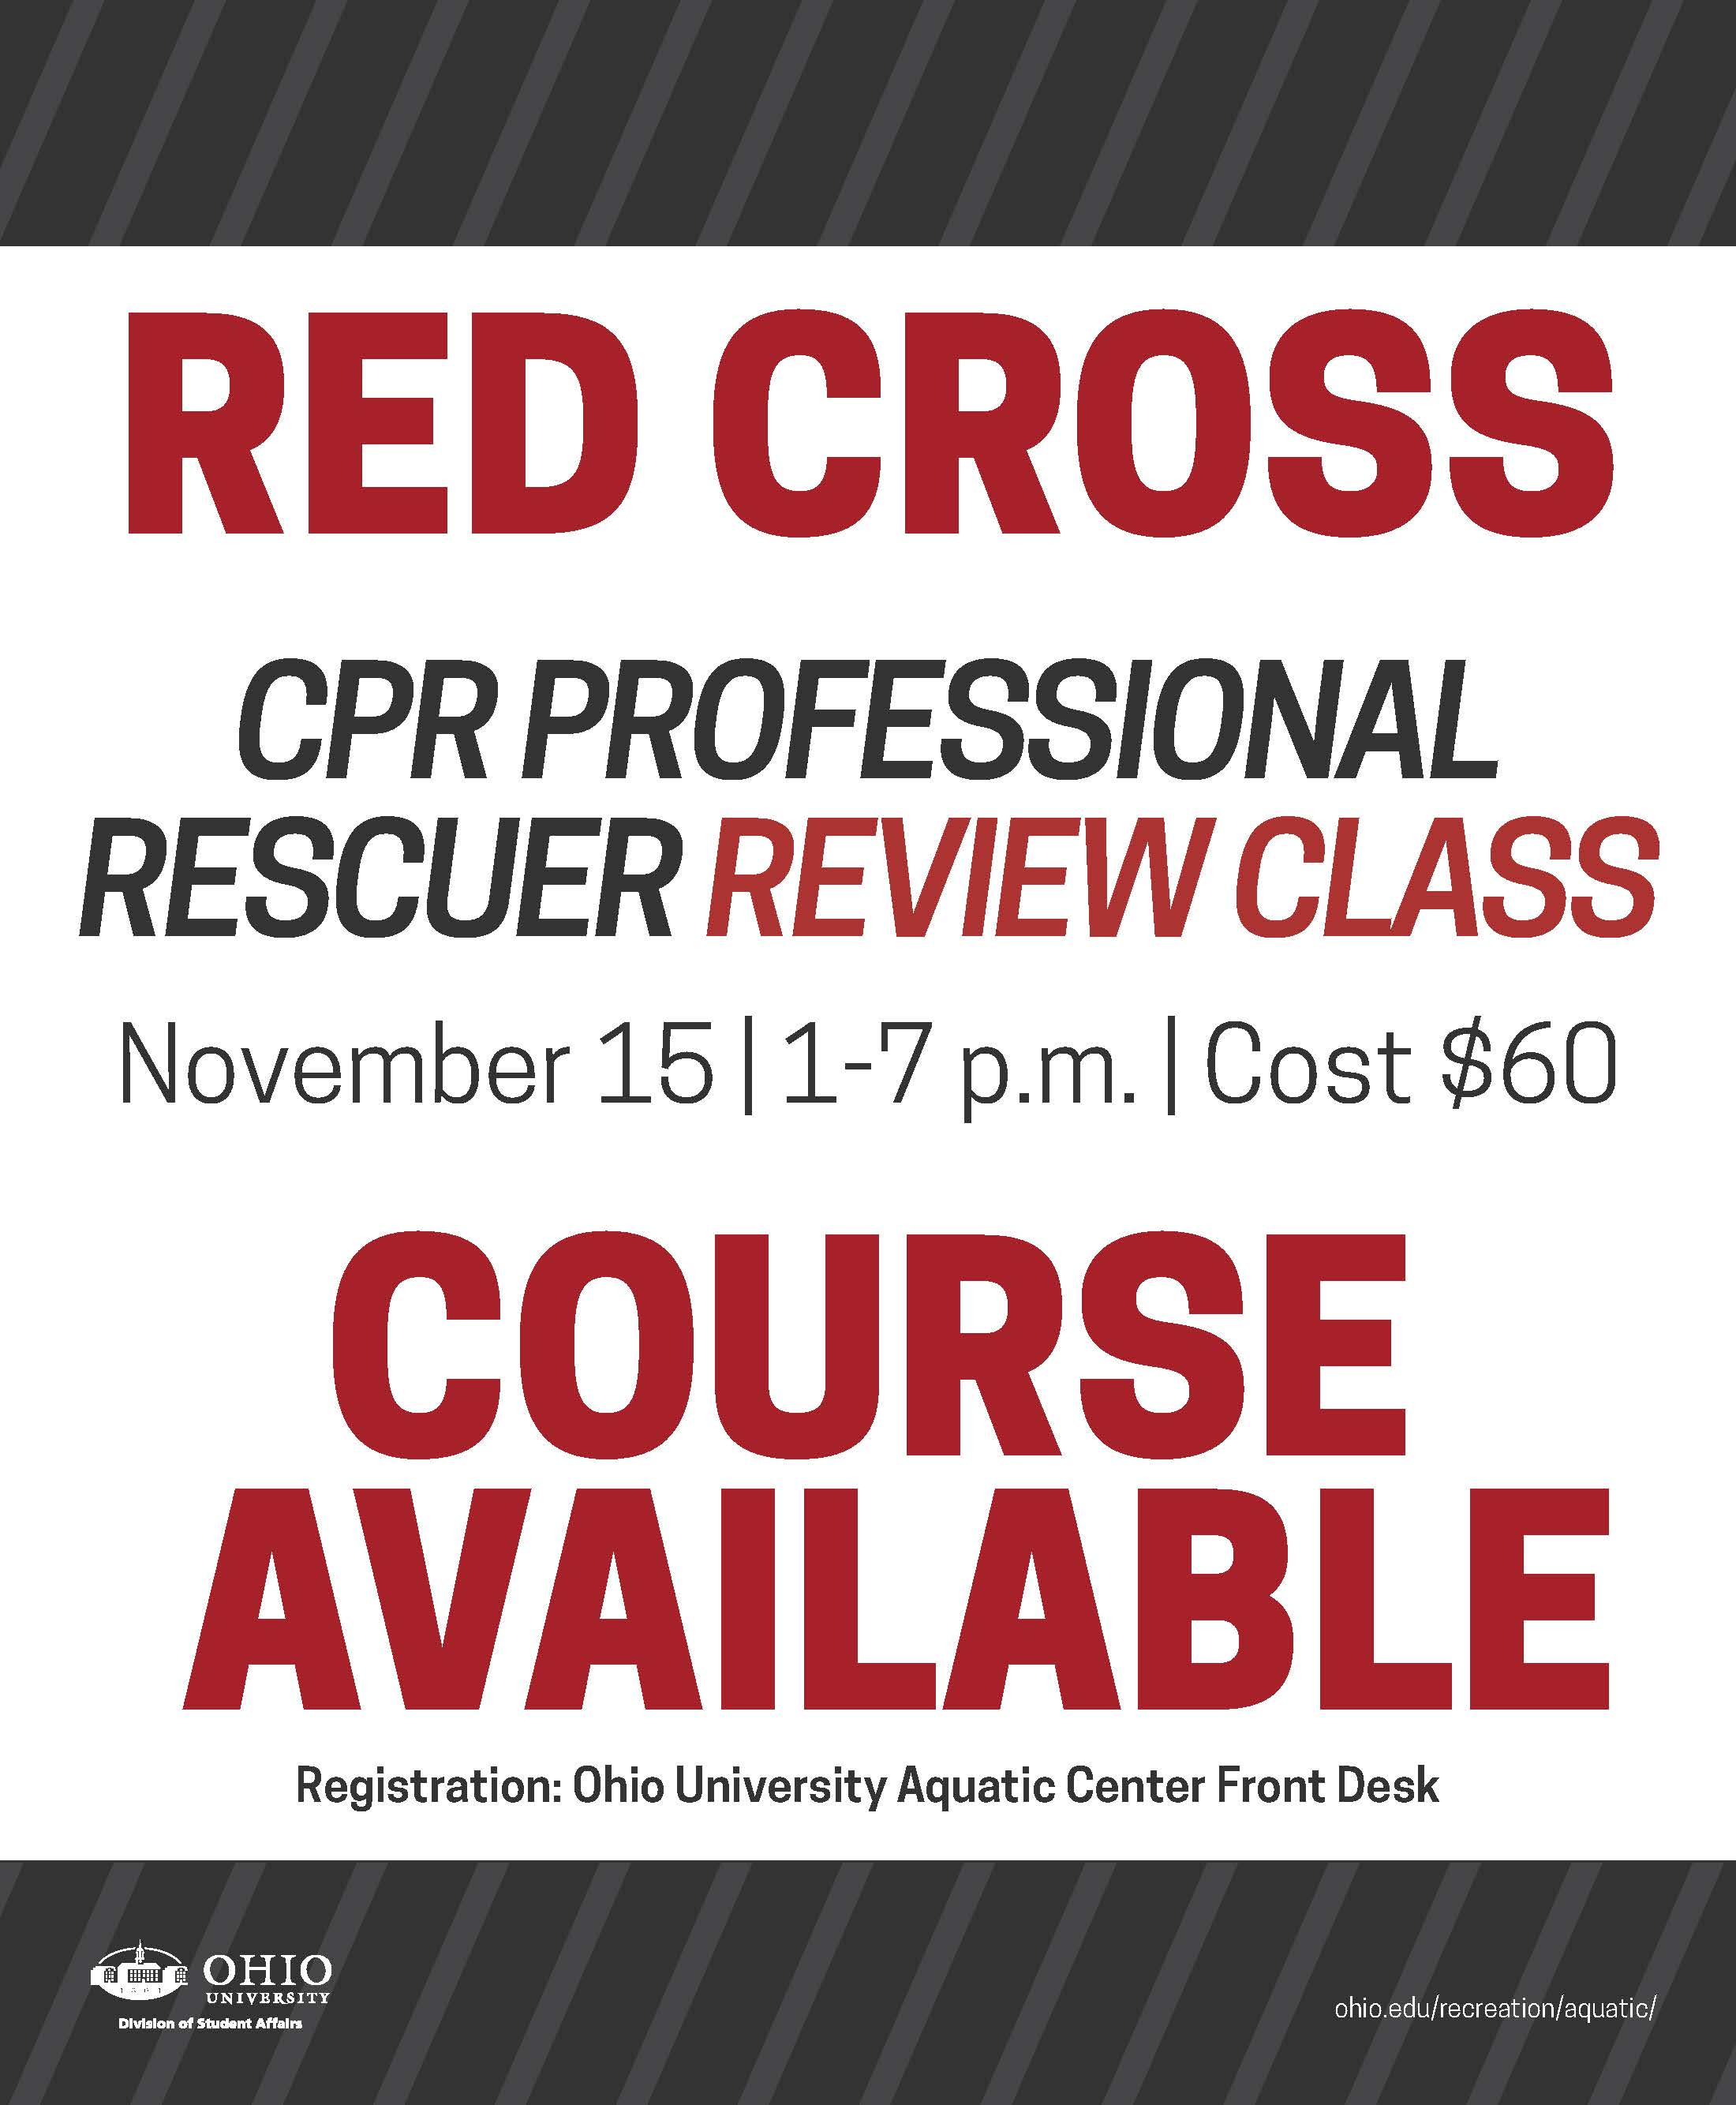 Ohio Calendar Of University Events Red Cross Cpr Professional